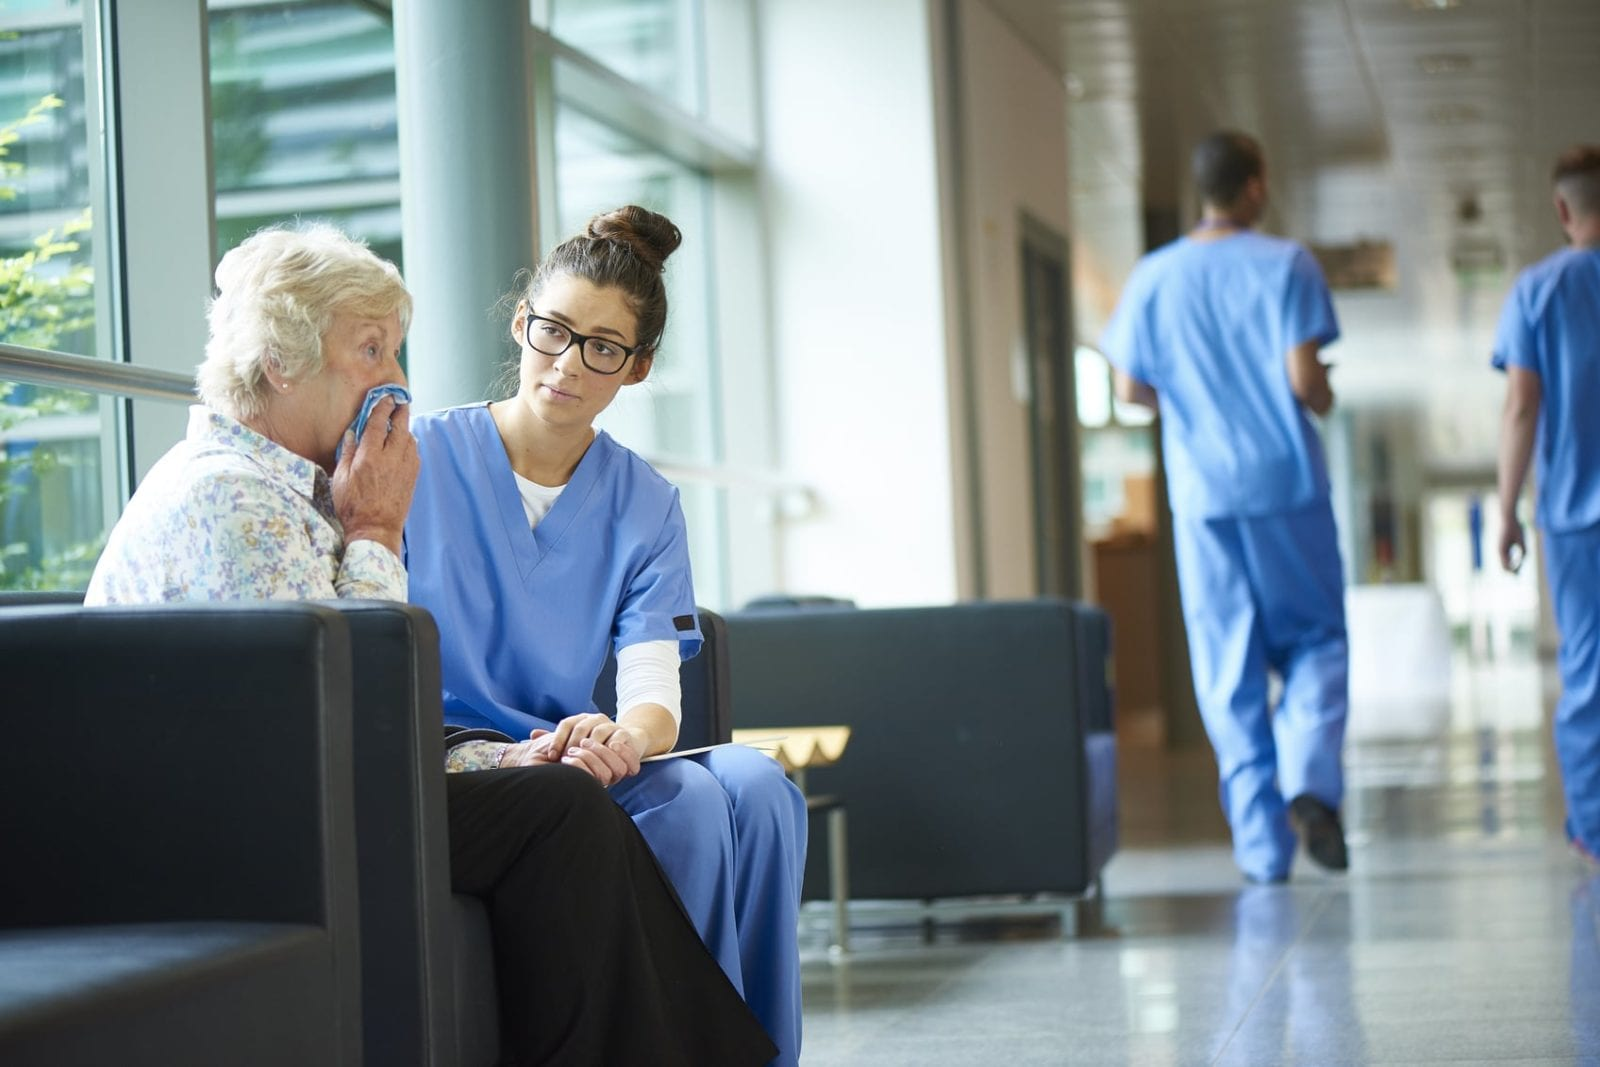 Nurse Consoling Elderly Woman In A Hospital Hallway Stock Photo